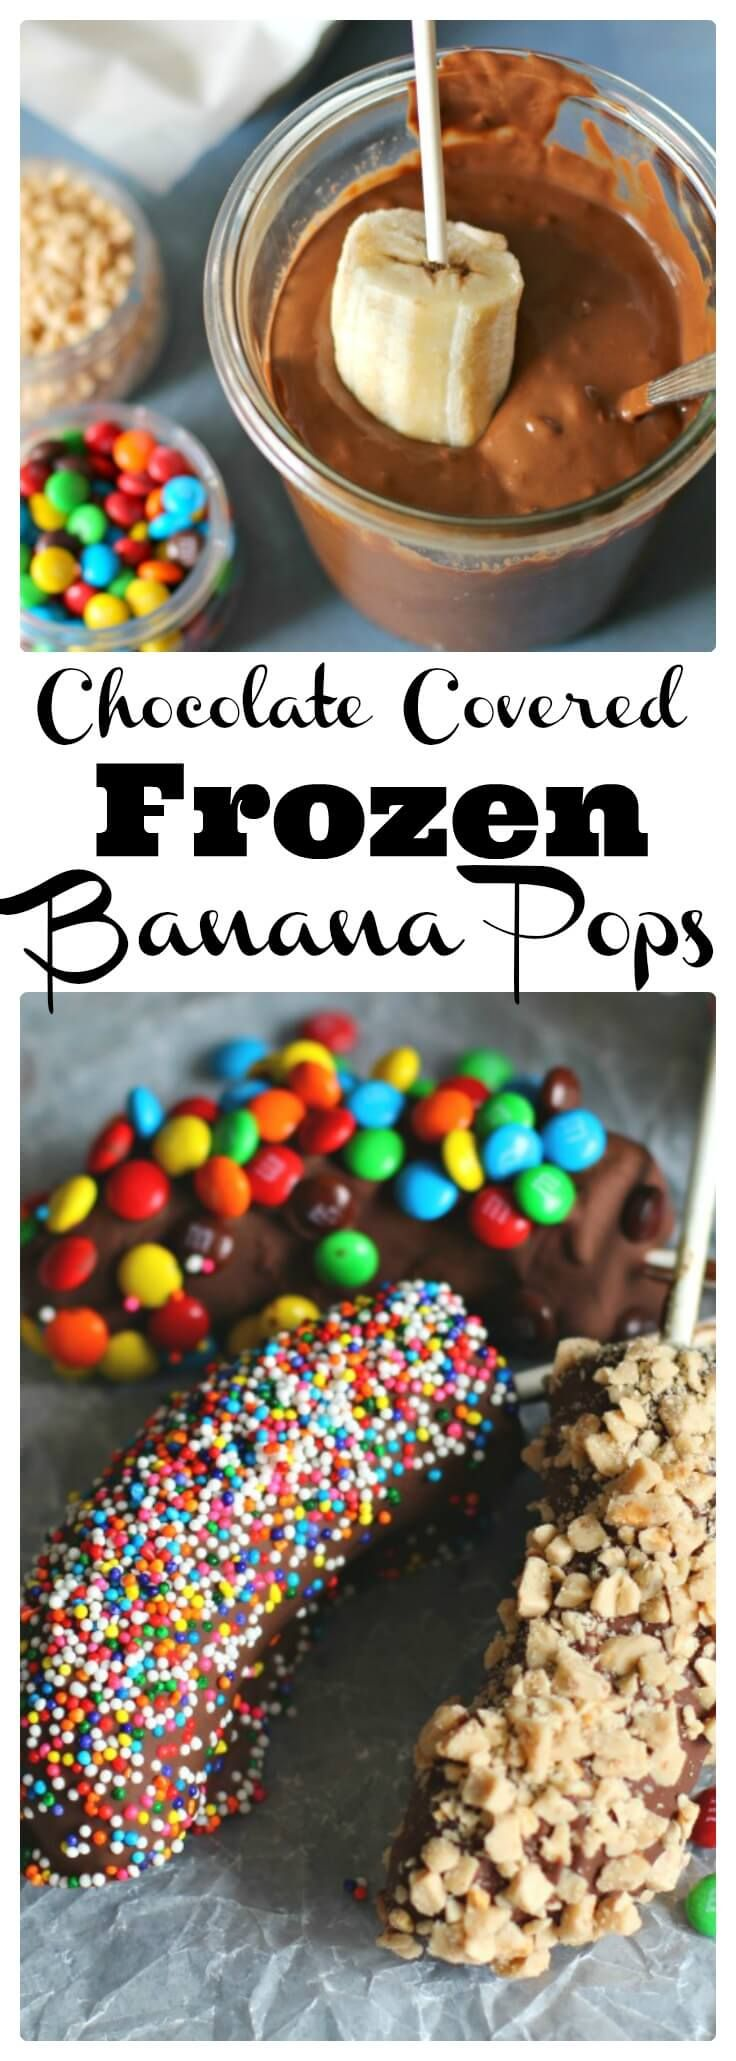 These Frozen Chocolate Dipped Bananas will not only be a fun activity to do with your kids, but they will be a fresh, healthy treat for their bottomless stomachs! Pick your toppings: M&M's, sprinkles, nuts, coconut!